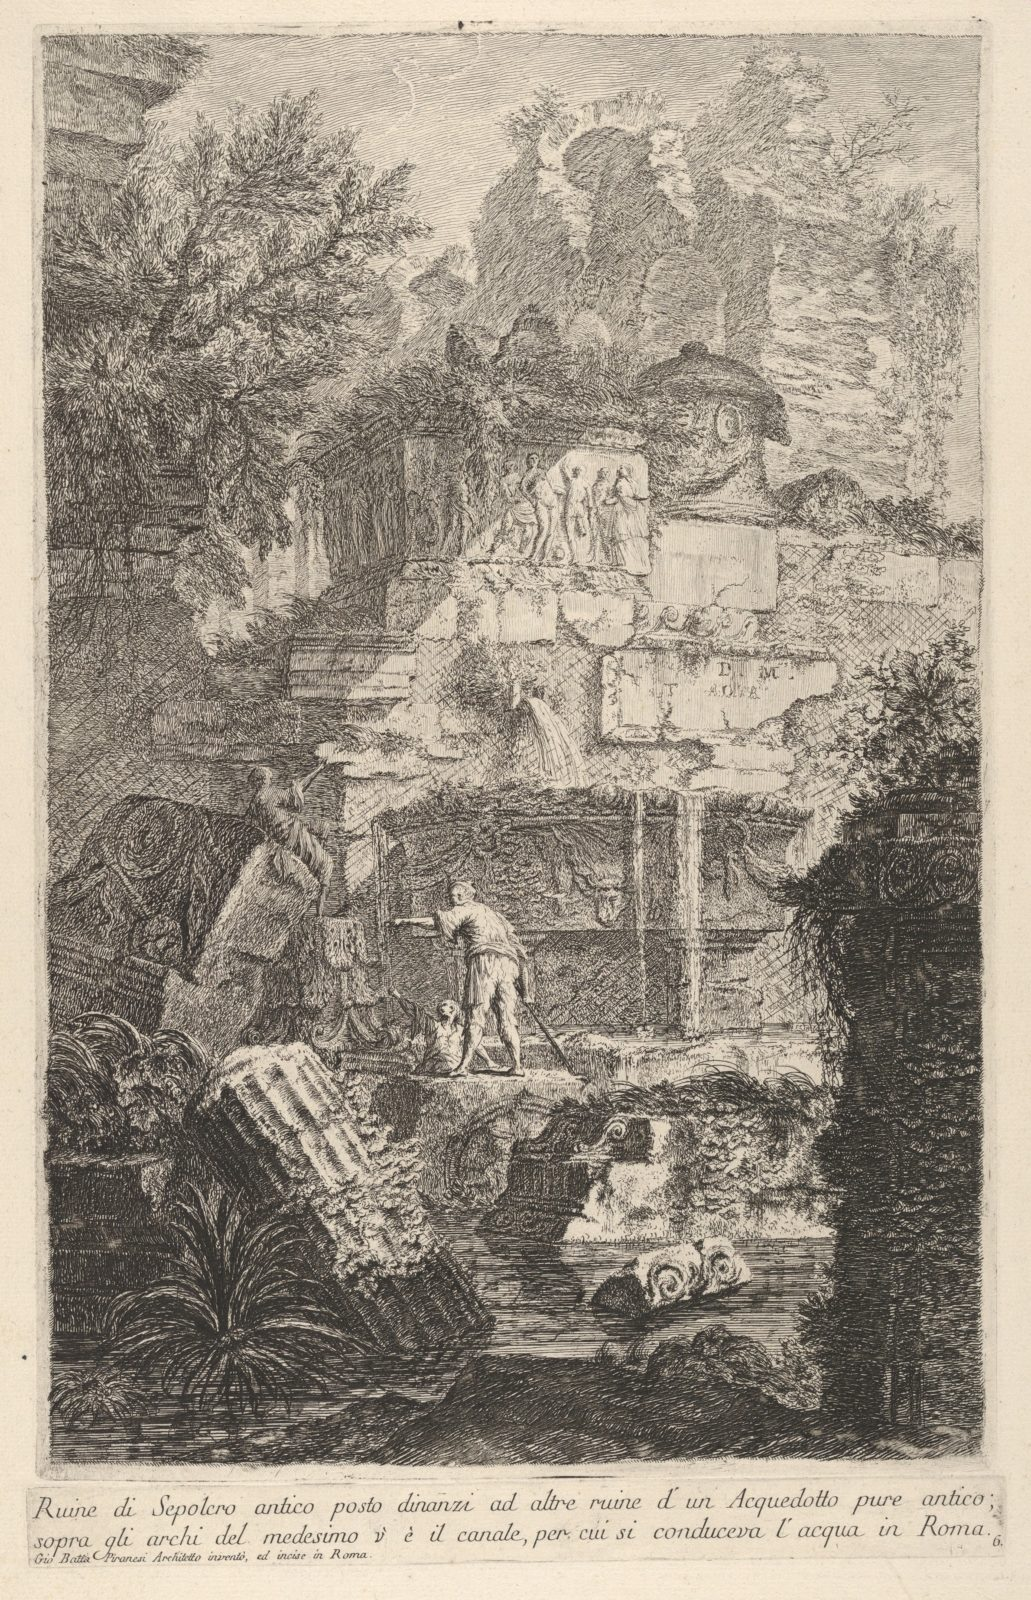 Plate 6: 'Ruins of an ancient tomb in front of ruins of an ancient aqueduct; above the arches of the latter is the channel which conveyed the water to Rome' (Ruine de sepolcro antico posto dinanzi ad altre ruine d'un Acquedotto pure antico; sopra gli archi del medesimo v'è il canale, per cui si conduceva l'acqua in Roma), from the series 'Part one of architecture and perspectives: drawn and etched by Gio. Batt'a Piranesi, Venetian Architect: dedicated to Nicola Giobbe' (Prima parte di Architetture, e prospettive inventate, ed incise da Gio. Batt'a Piranesi Architetto Veneziano dedicate al Sig. Nicola Giobbe)